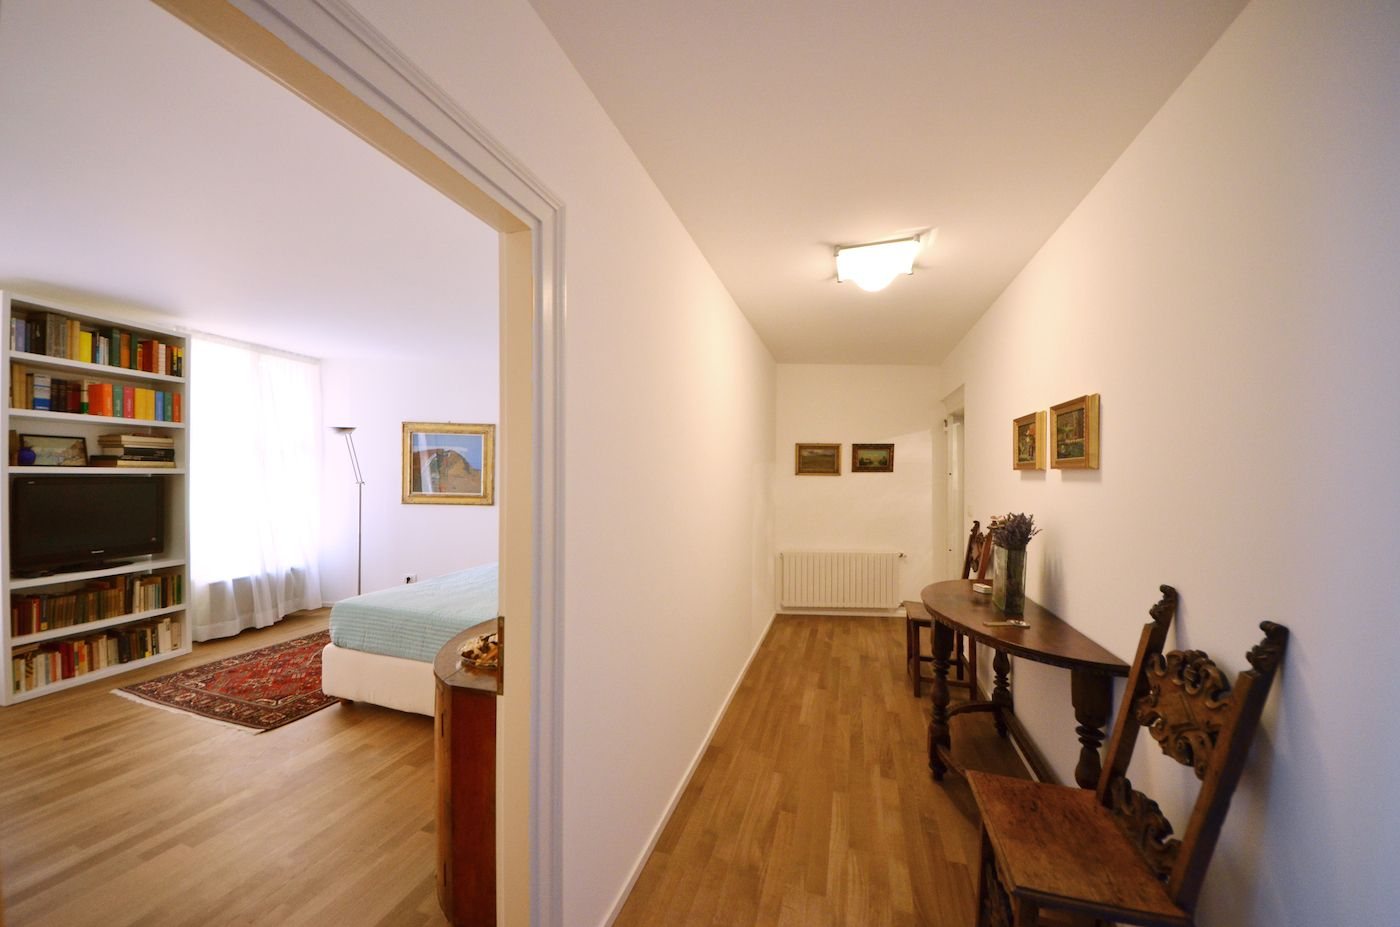 entrance room of the Vendramin apartment that leads to the master bedroom